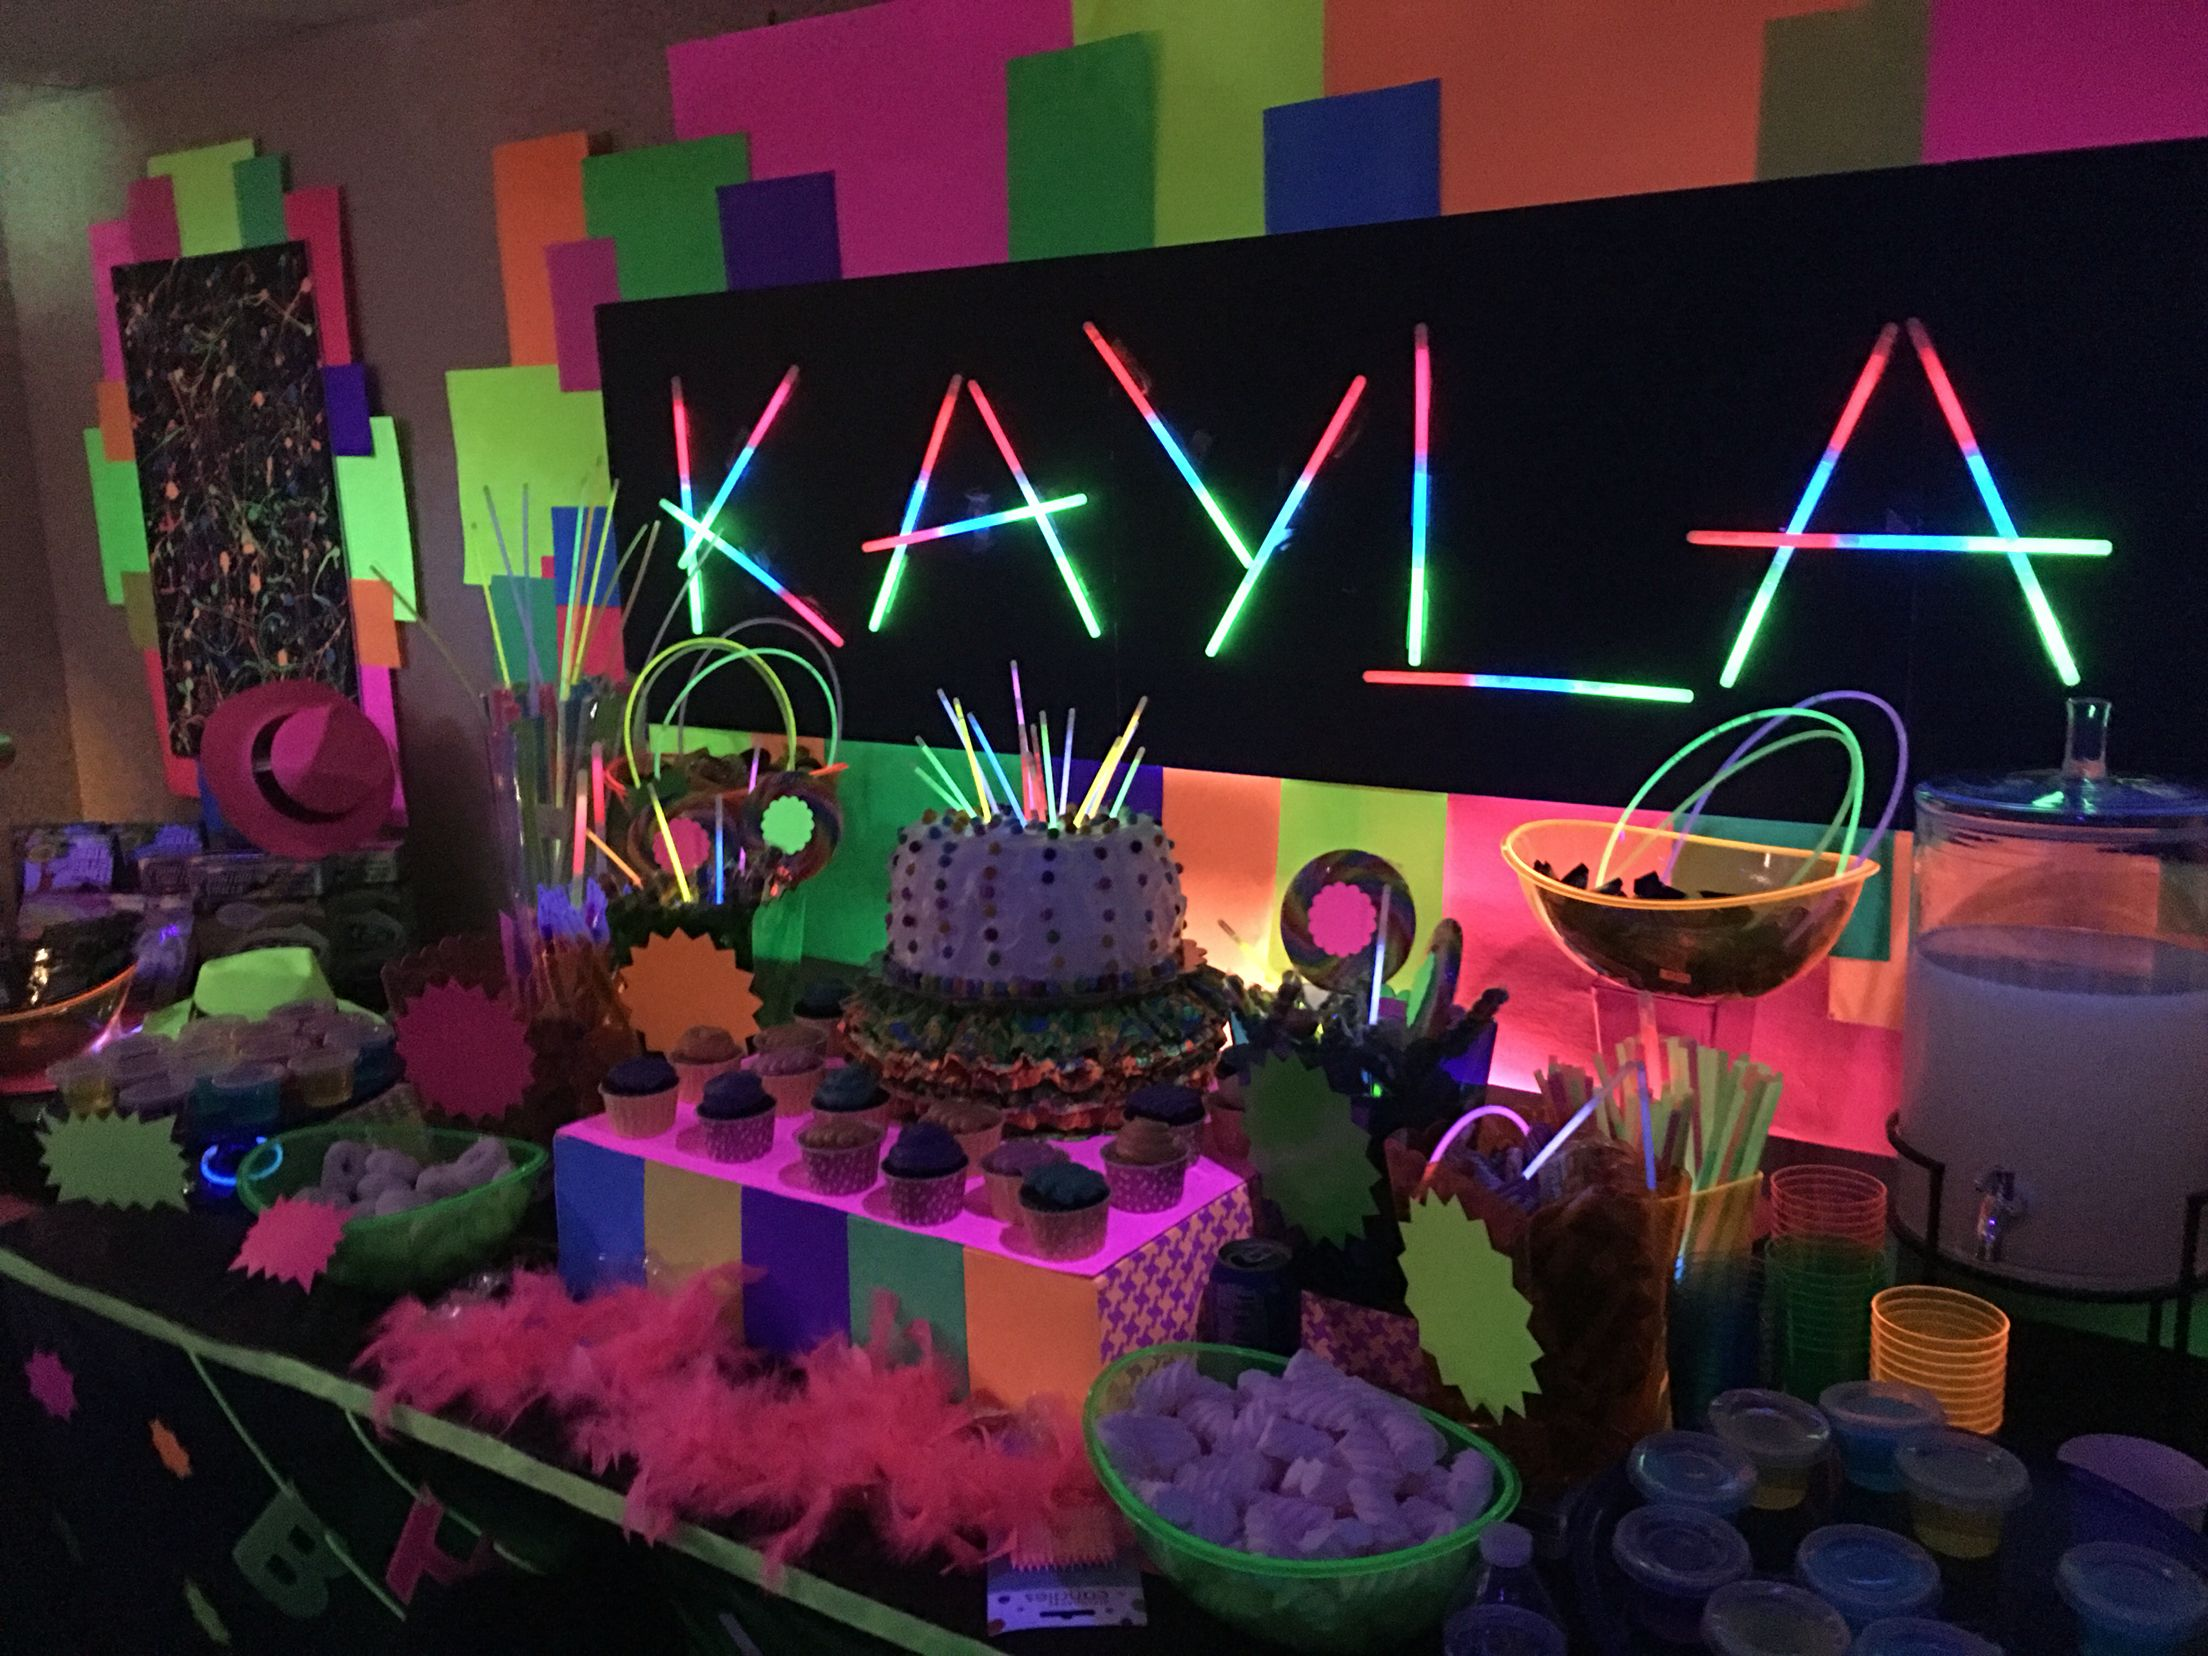 Created this dessert/candy buffet and decor for my daughter